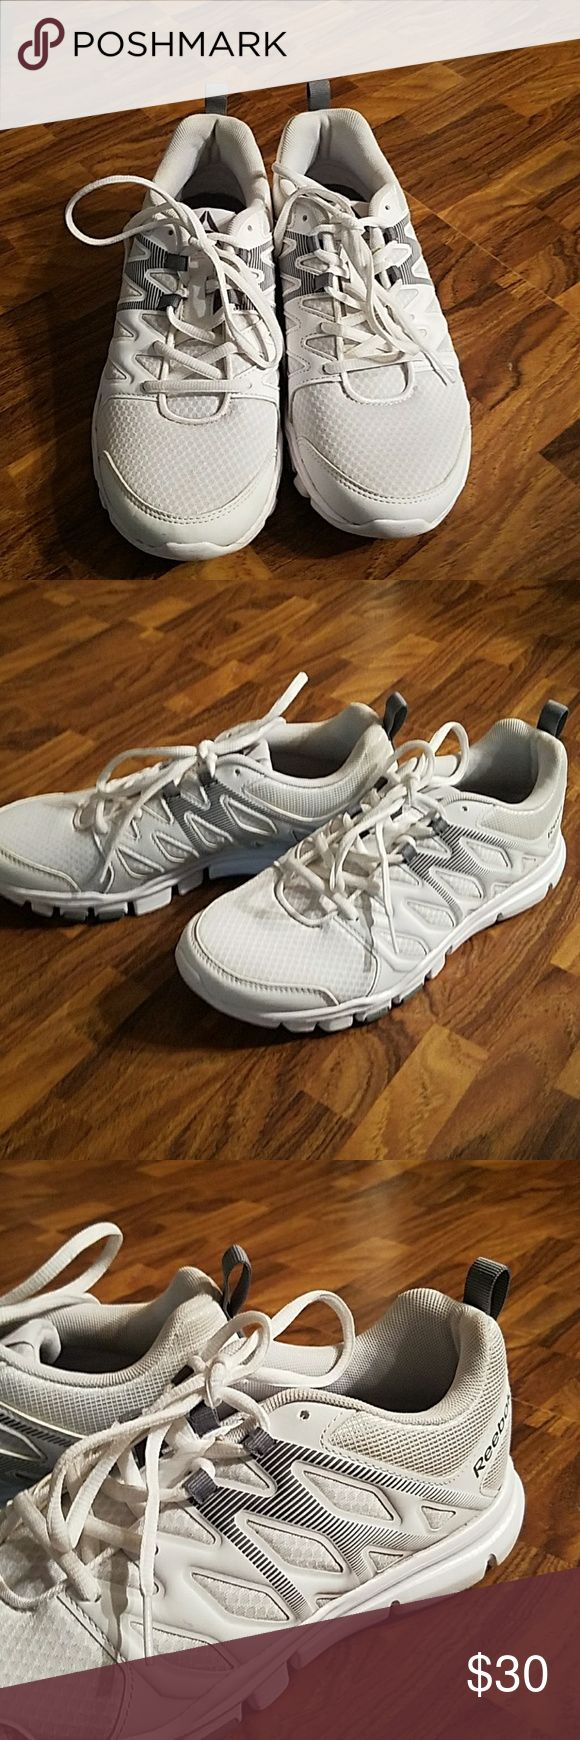 Reebok Shoes White Silver and Black. Only been worn two times. Reebok Shoes Sneakers